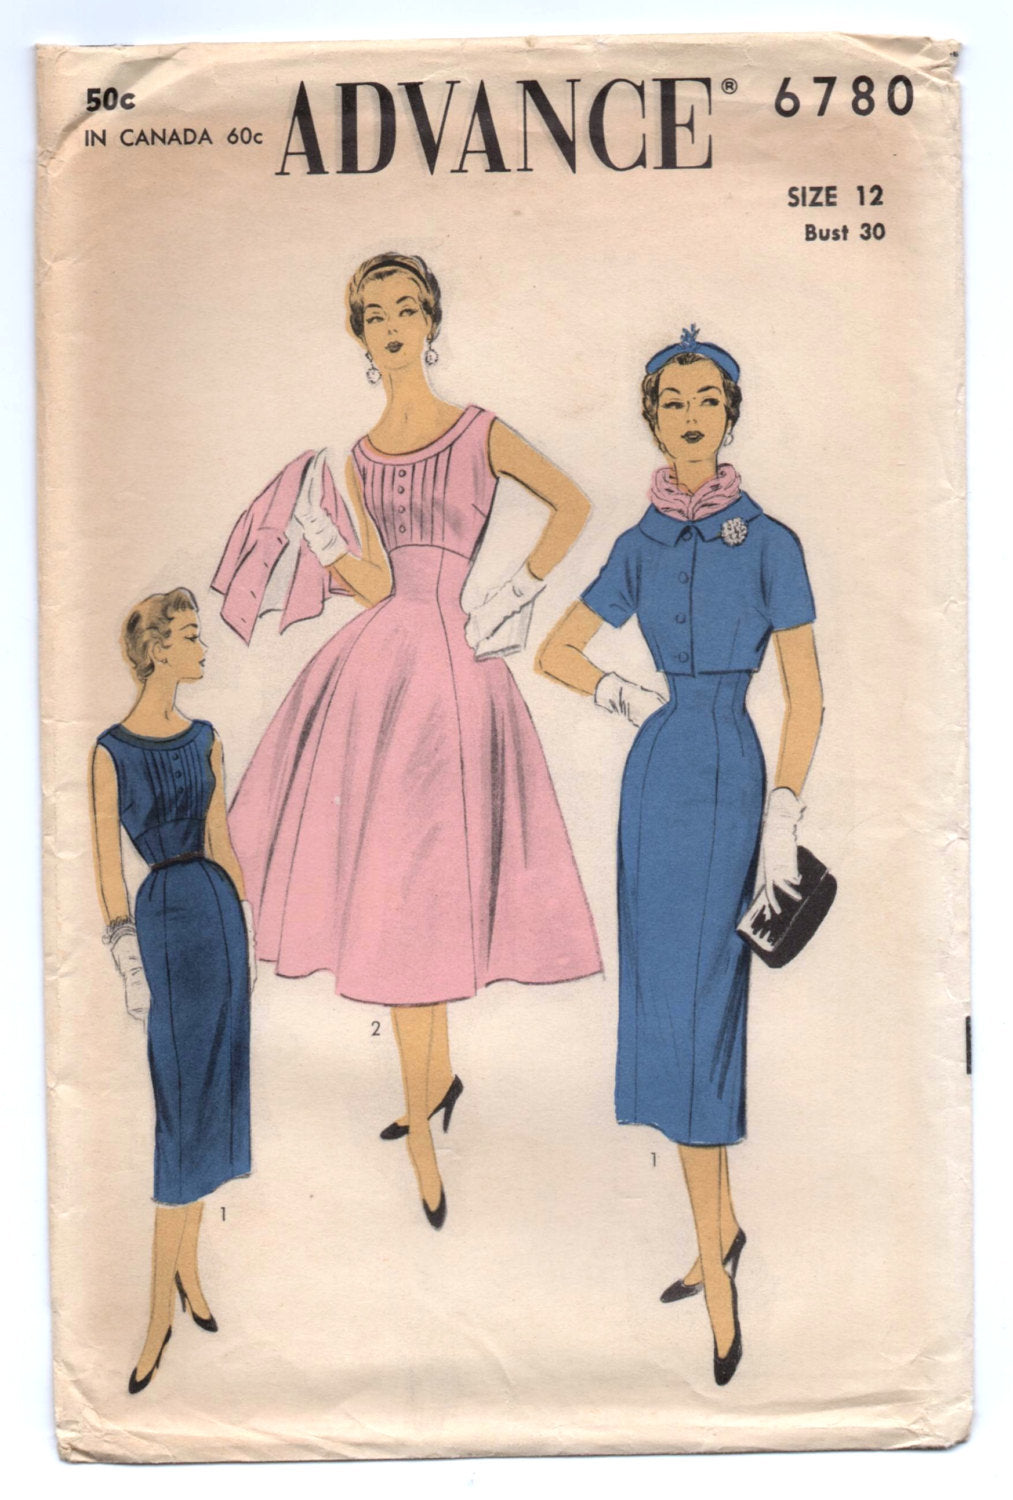 1950's Advance One-Piece Dress and Bolero Pattern - Bust 30